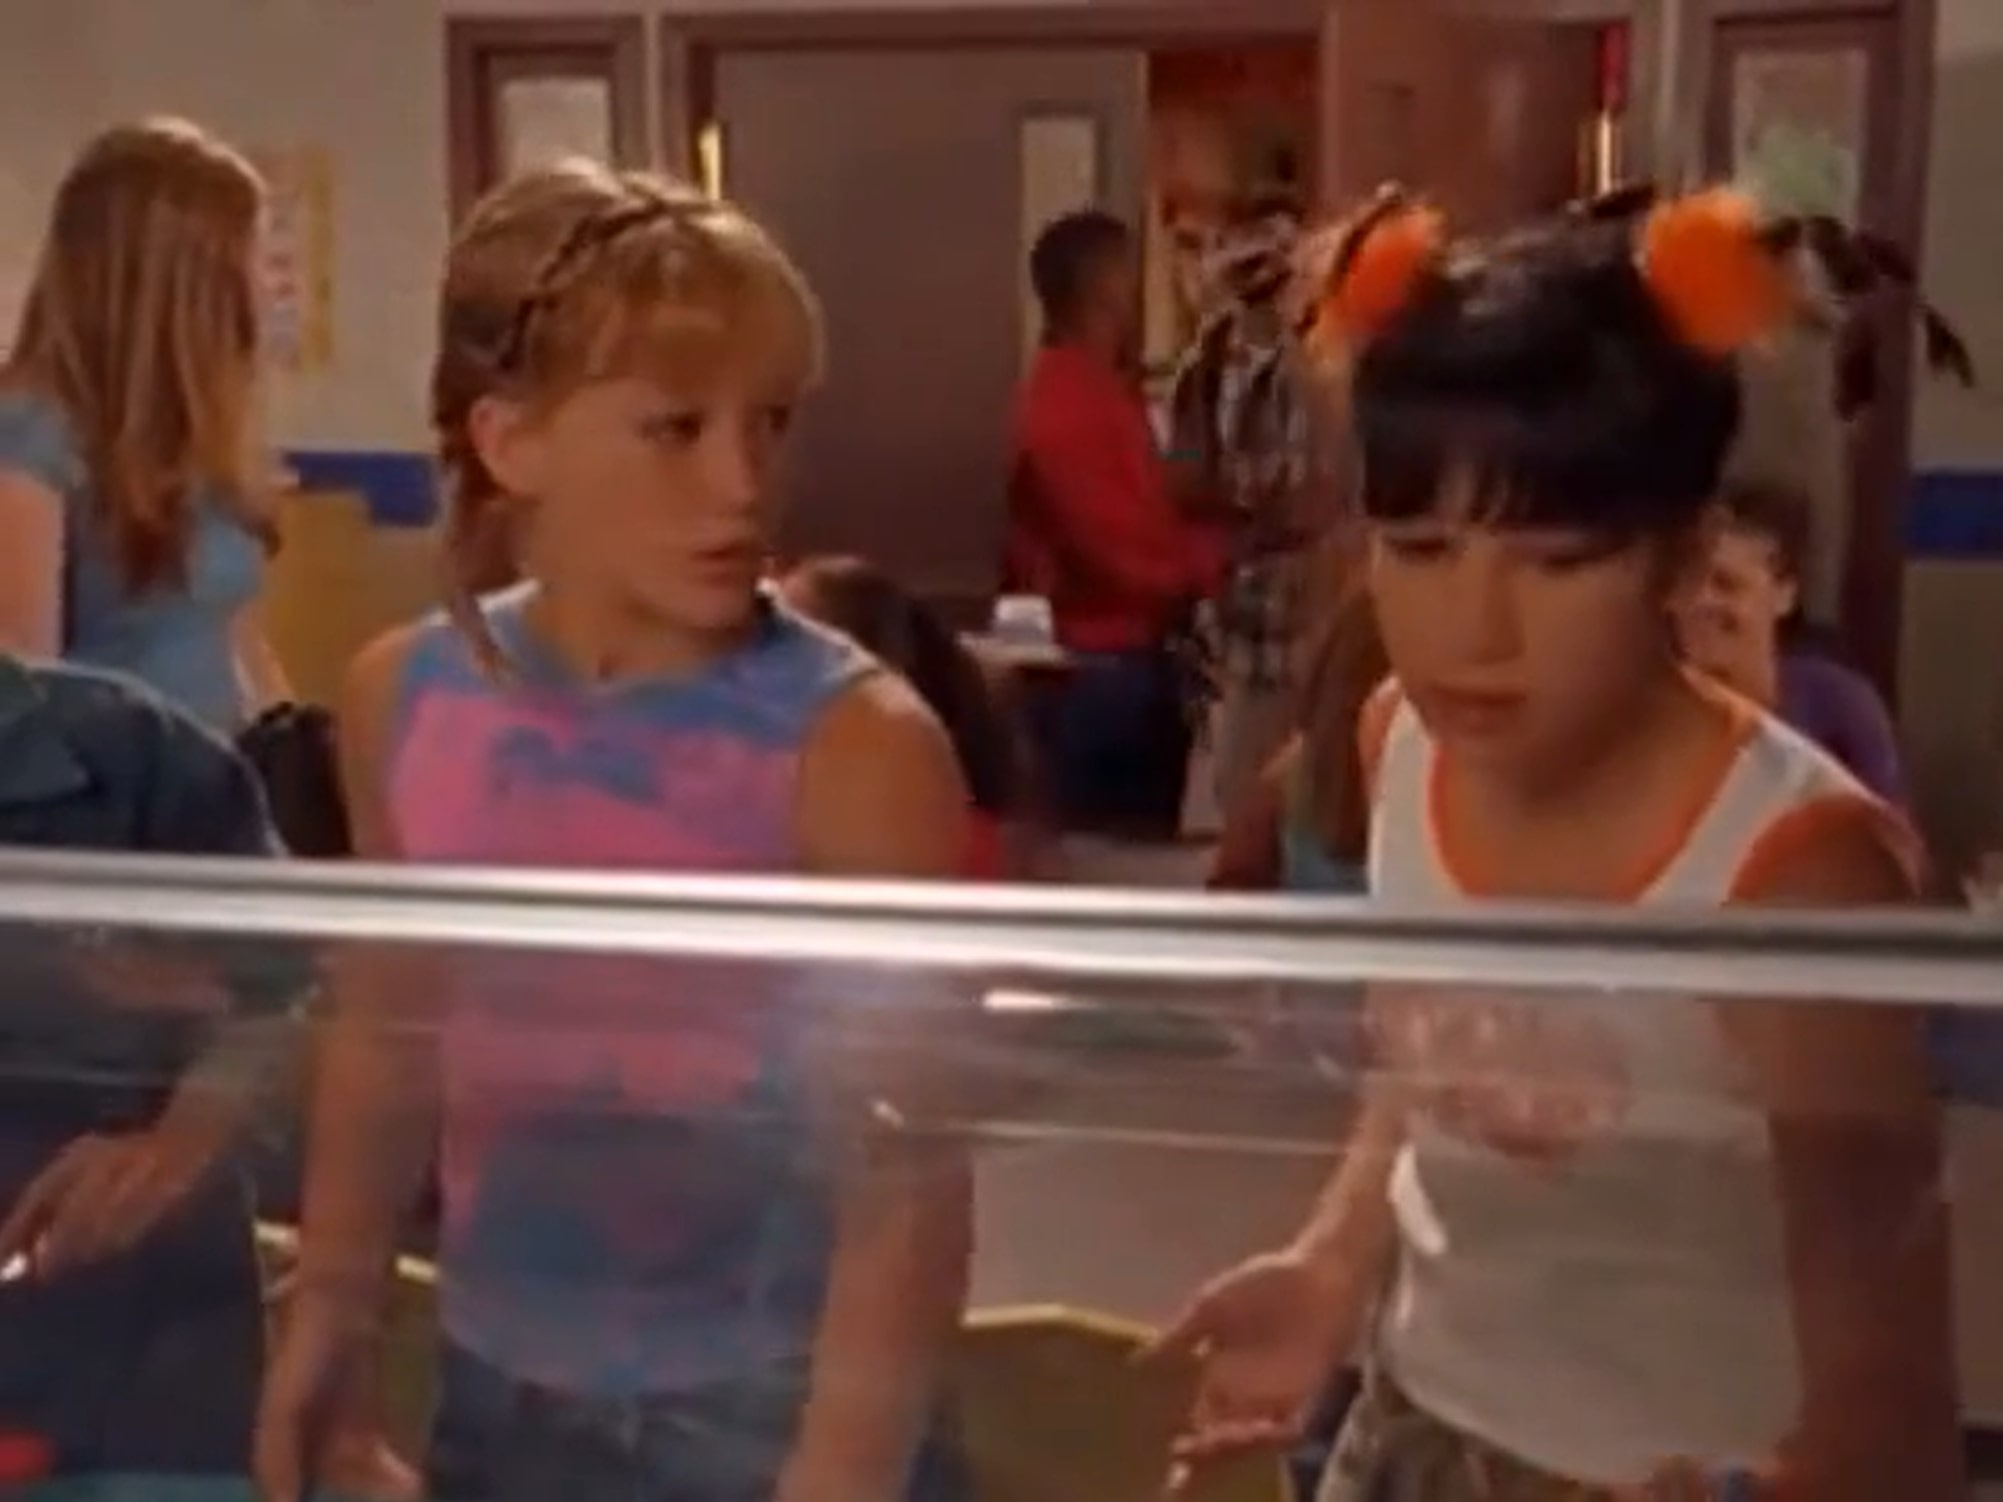 Lizzie and Miranda in the cafeteria in Lizzie McGuire Episode 101: Rumors